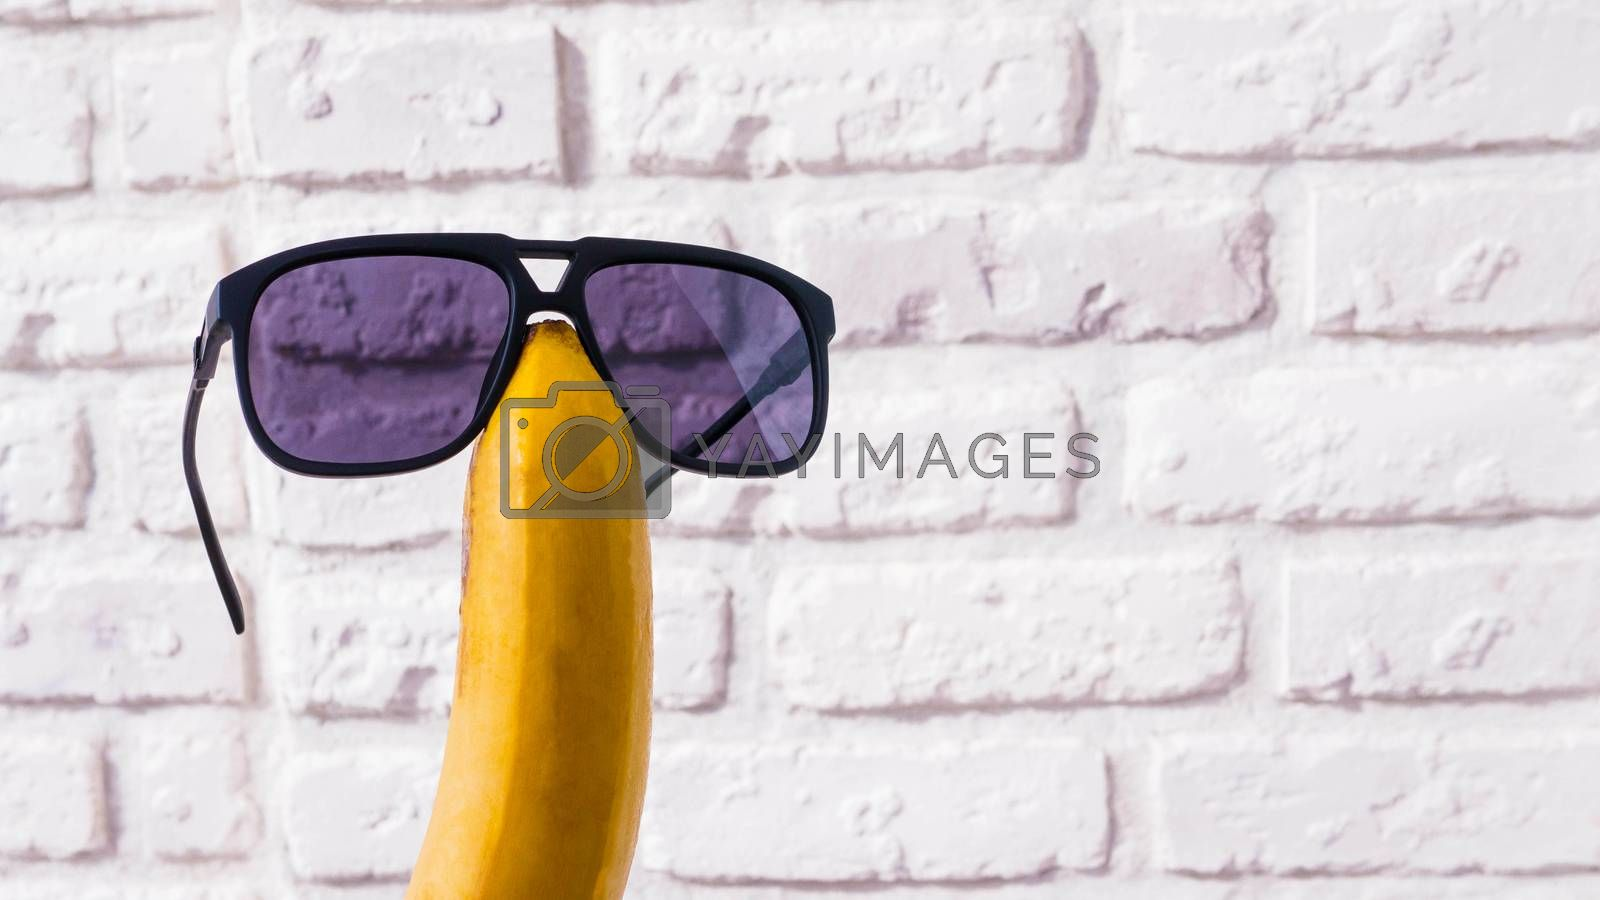 Royalty free image of Banana in sunglasses on a brick wall background,close-up. by Andriii_Klapkoo